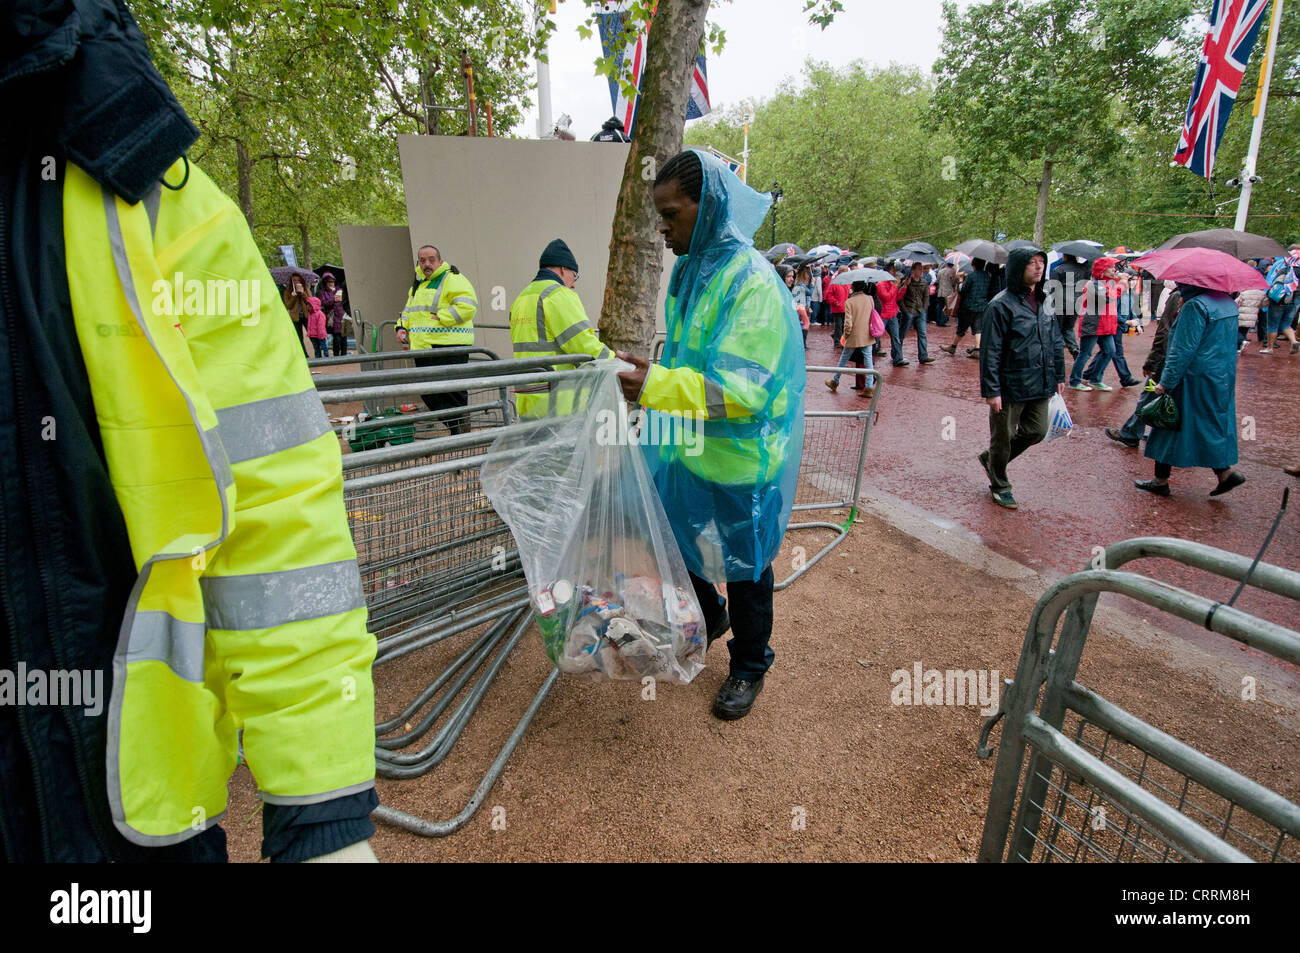 Team of men collecting litter after Diamond Jubilee event - Stock Image